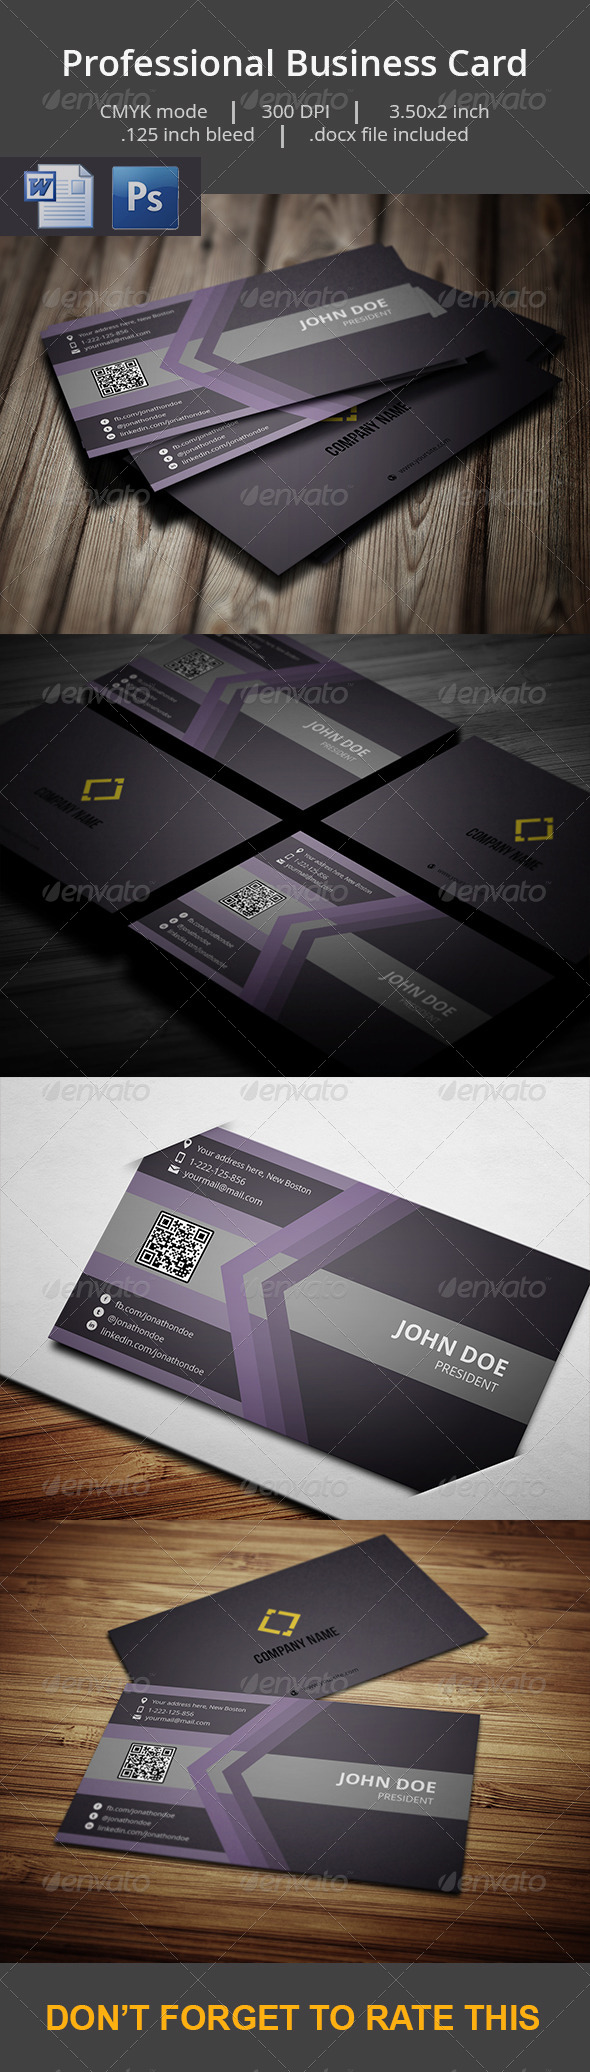 GraphicRiver Professional Business Card With MS Word Doc 7310145